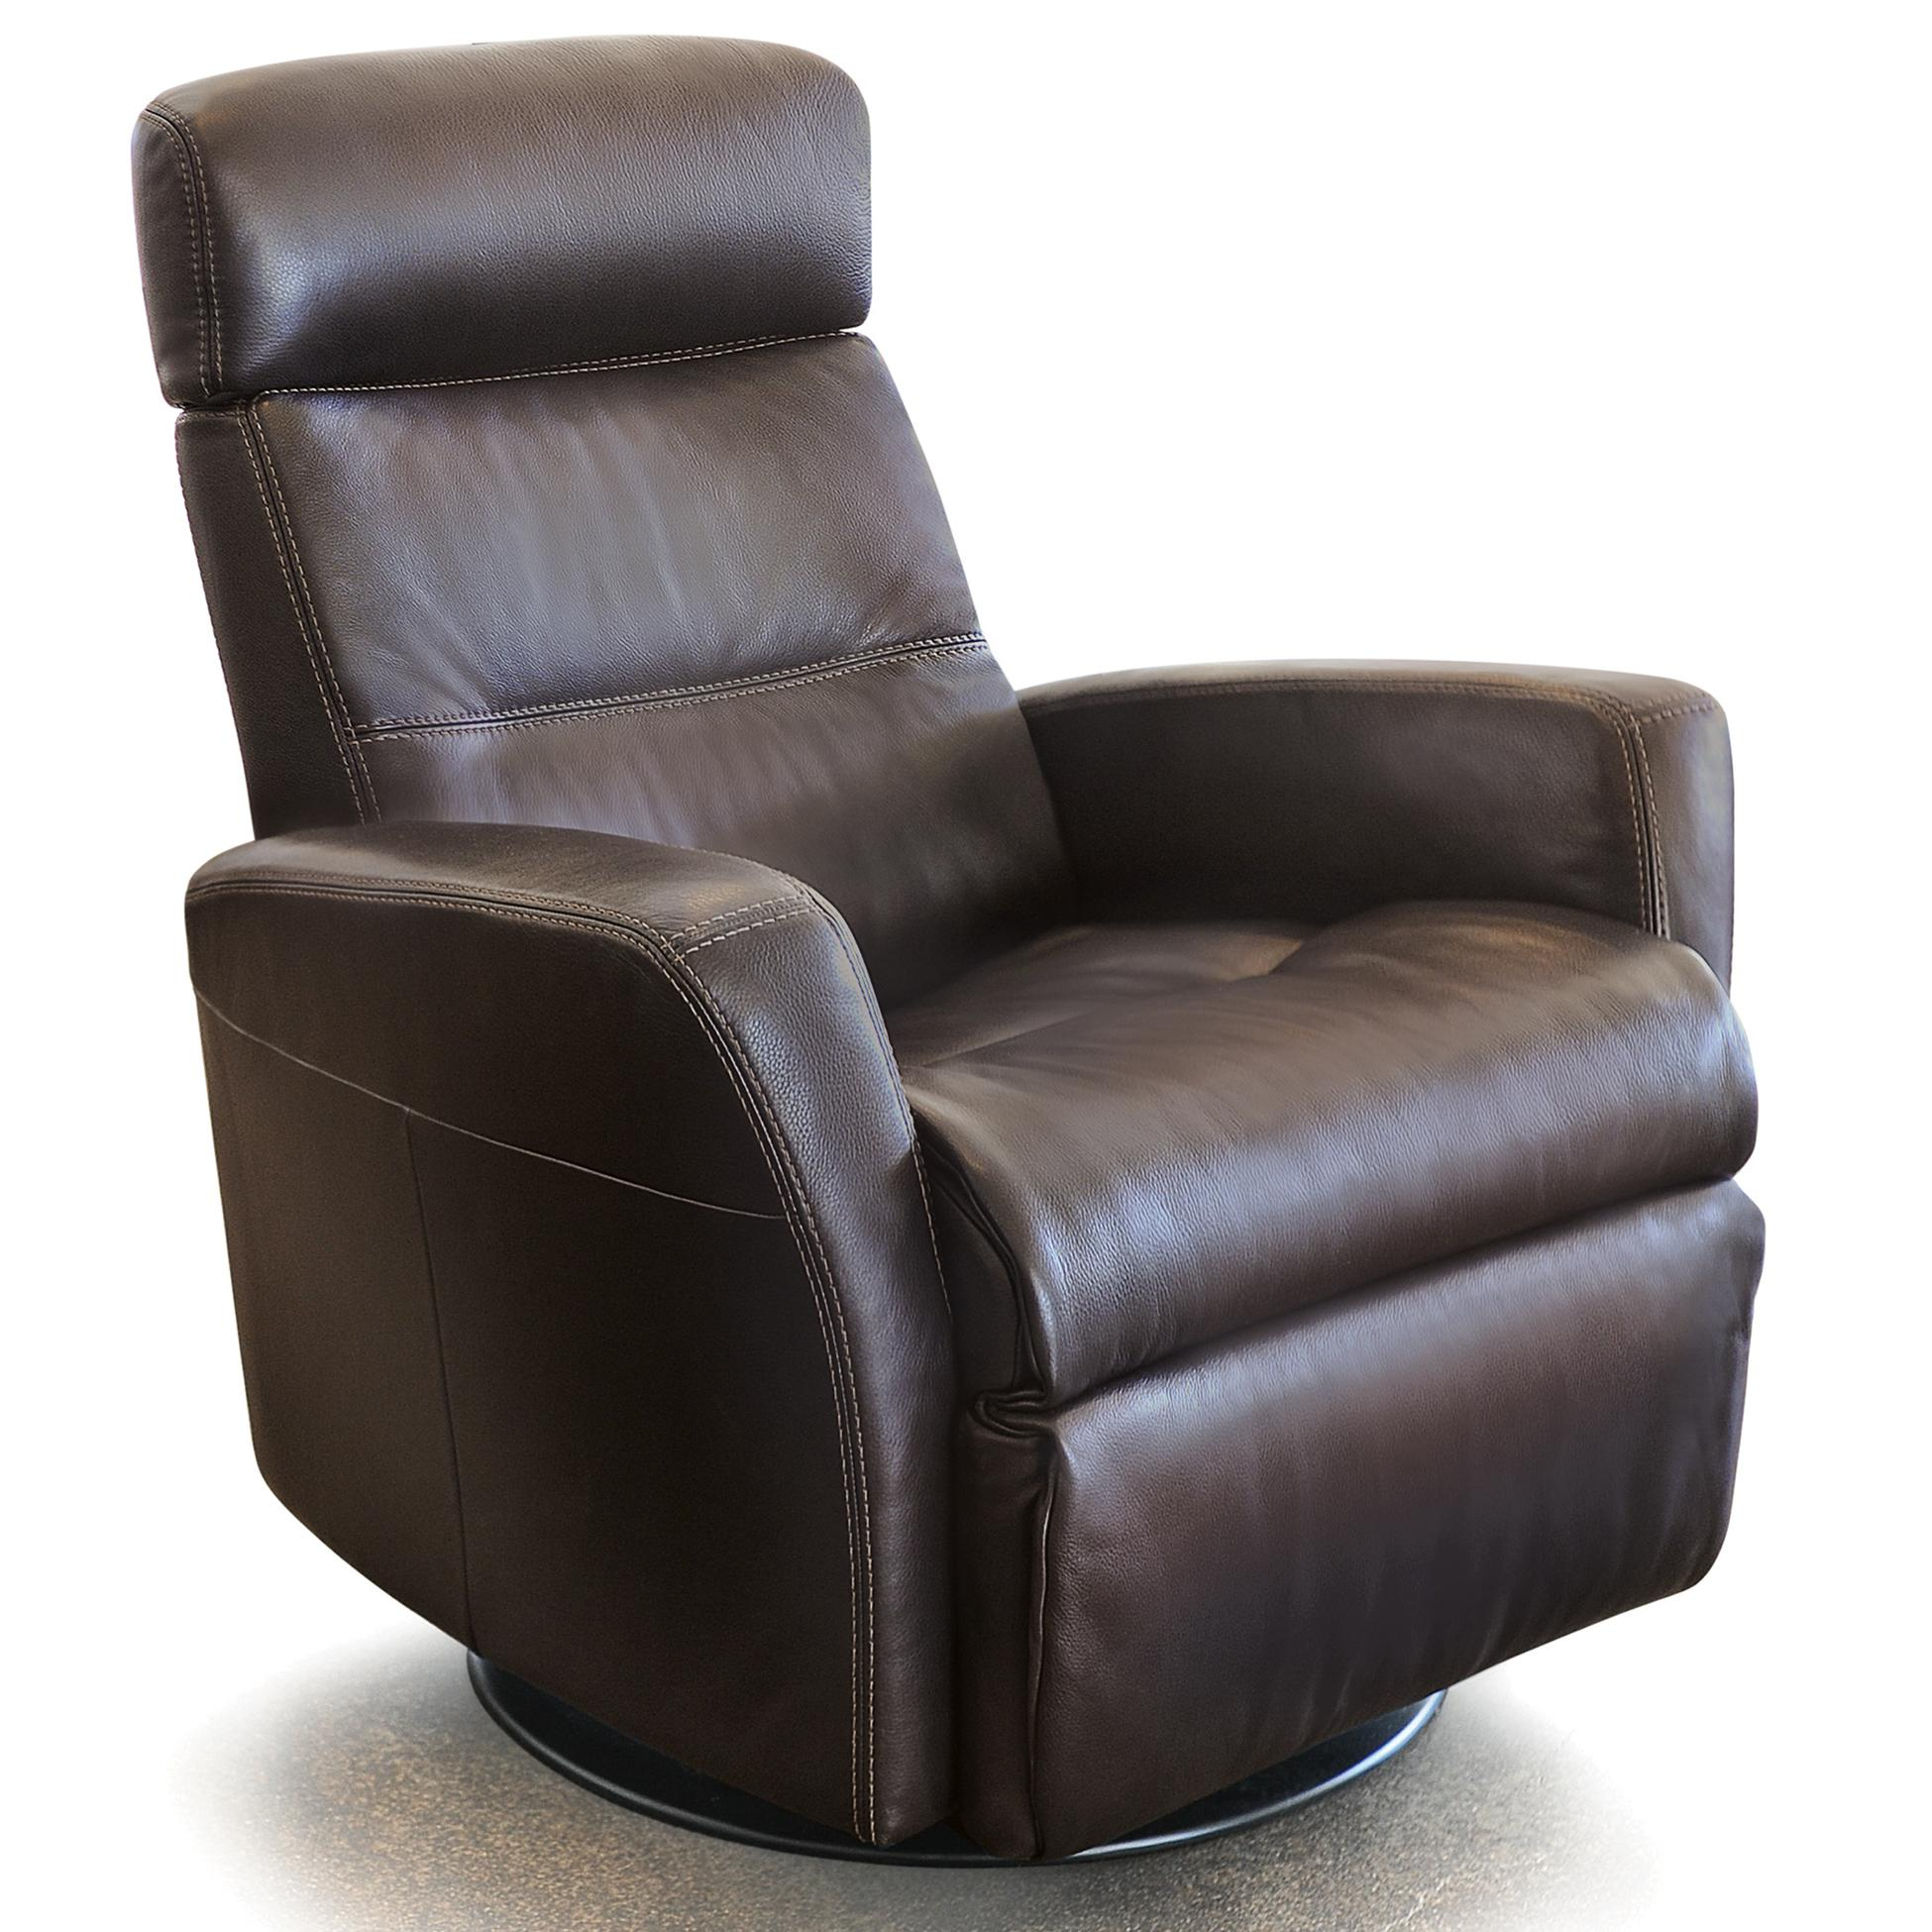 Recliners Recliner Relaxer by IMG Norway at Wilson's Furniture